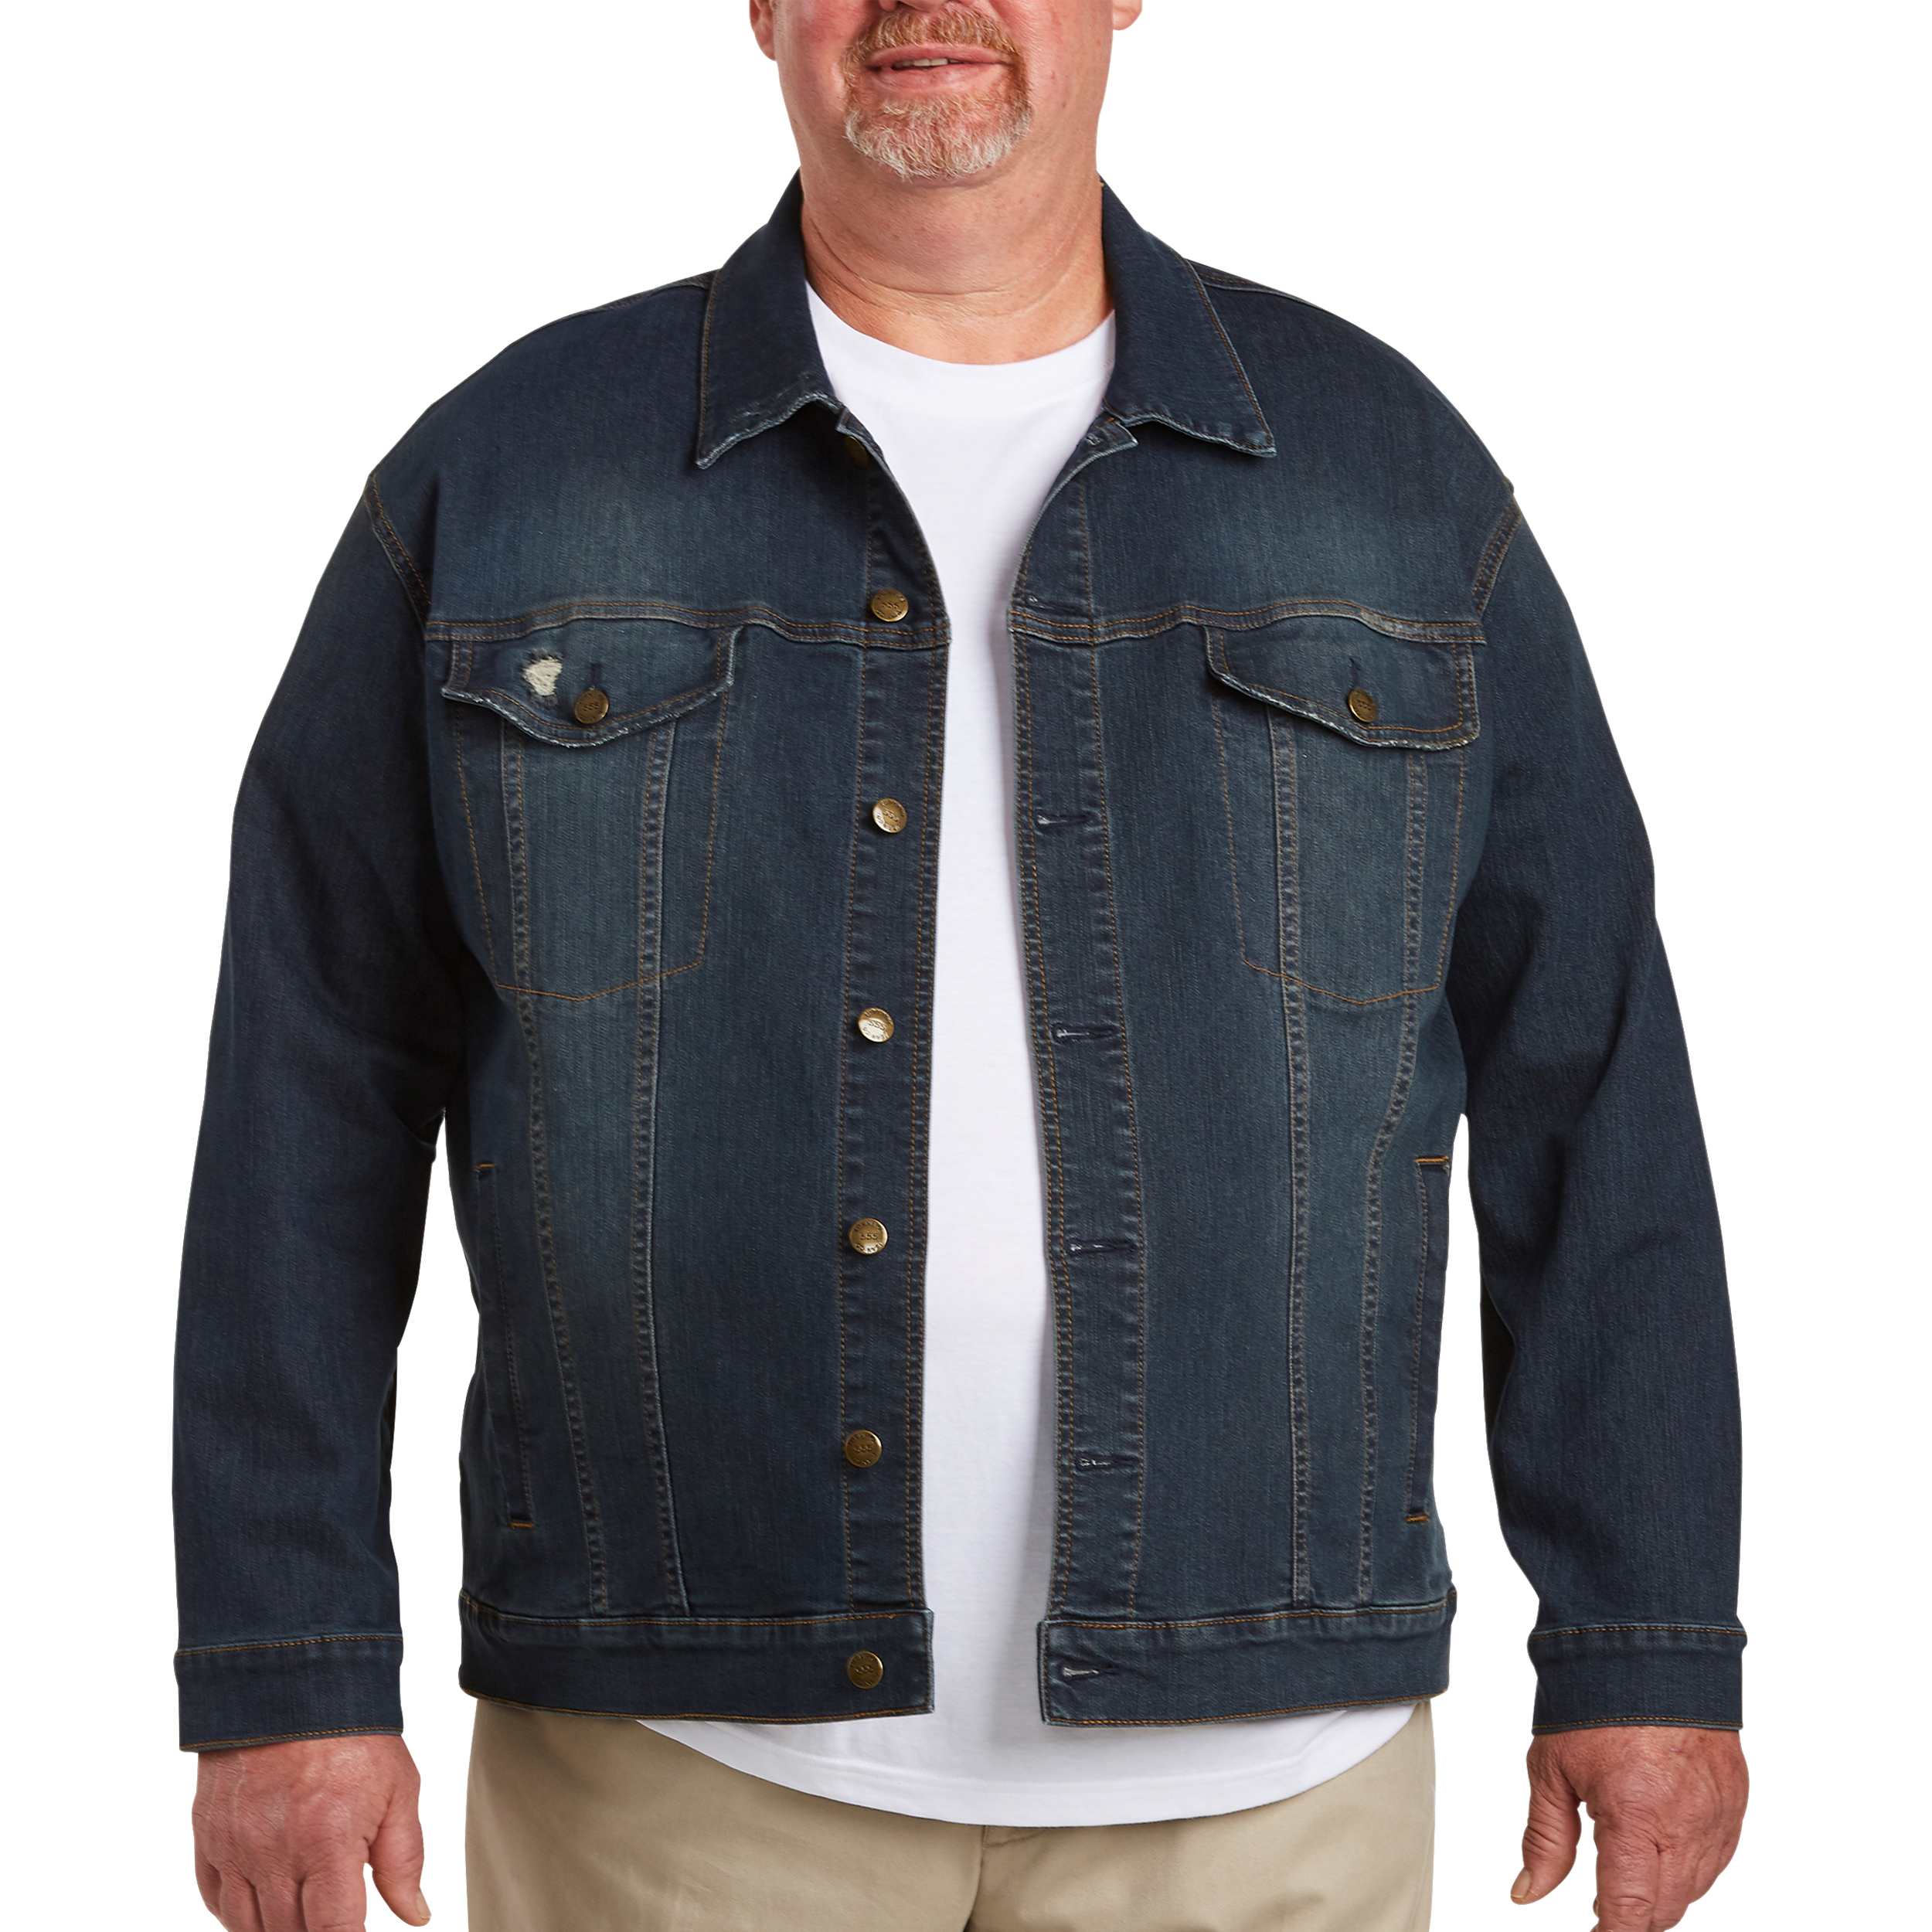 Image of 555 Turnpike Men's Big & Tall Denim Jacket